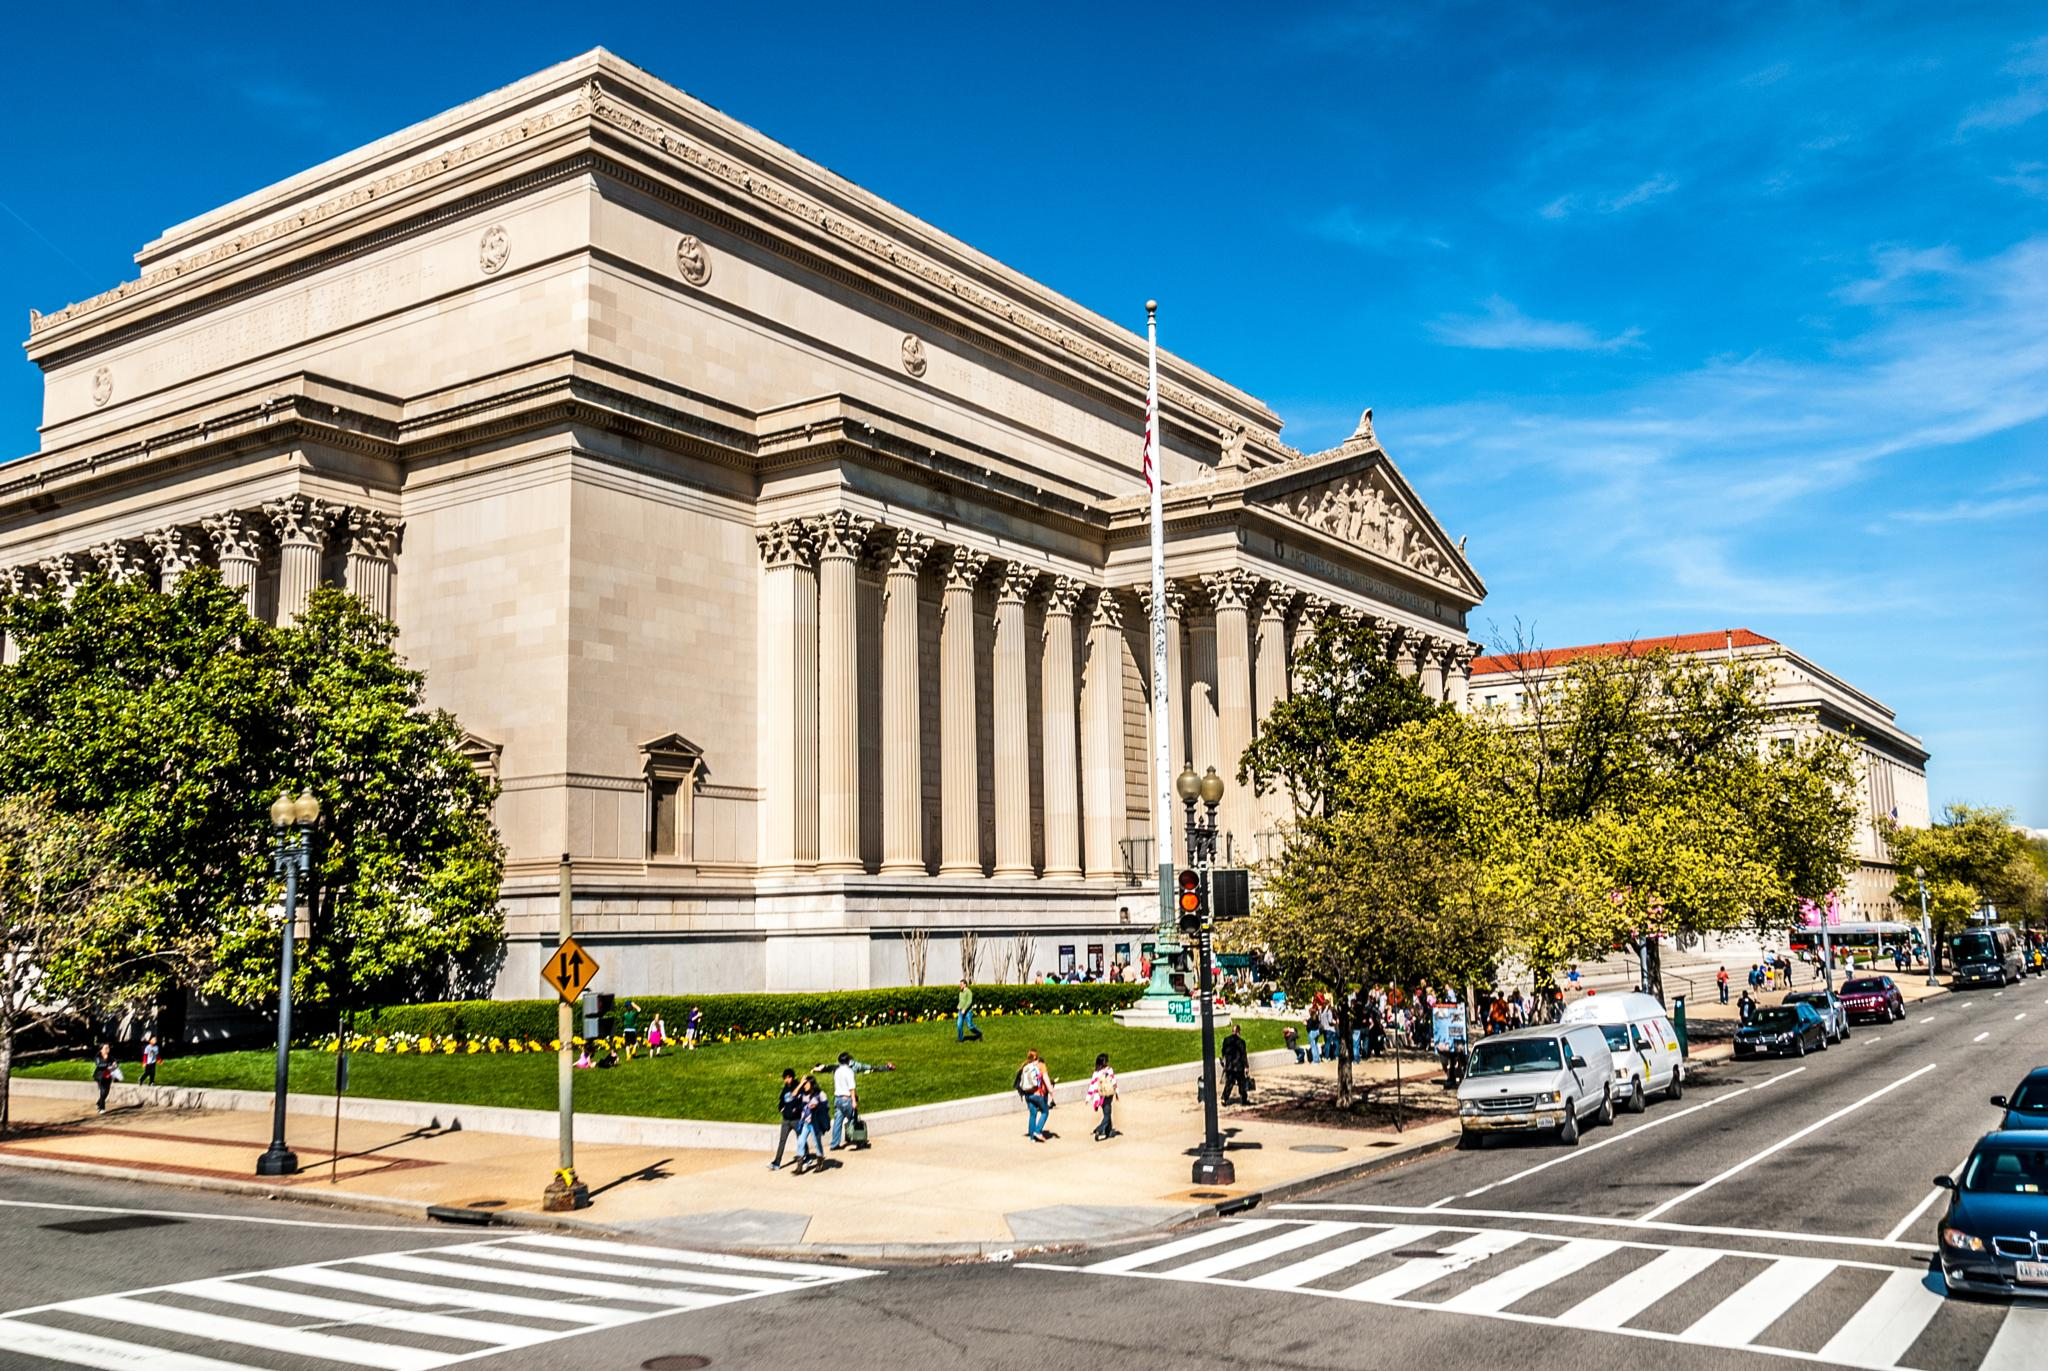 Historical building in DC by Sabrina Sens